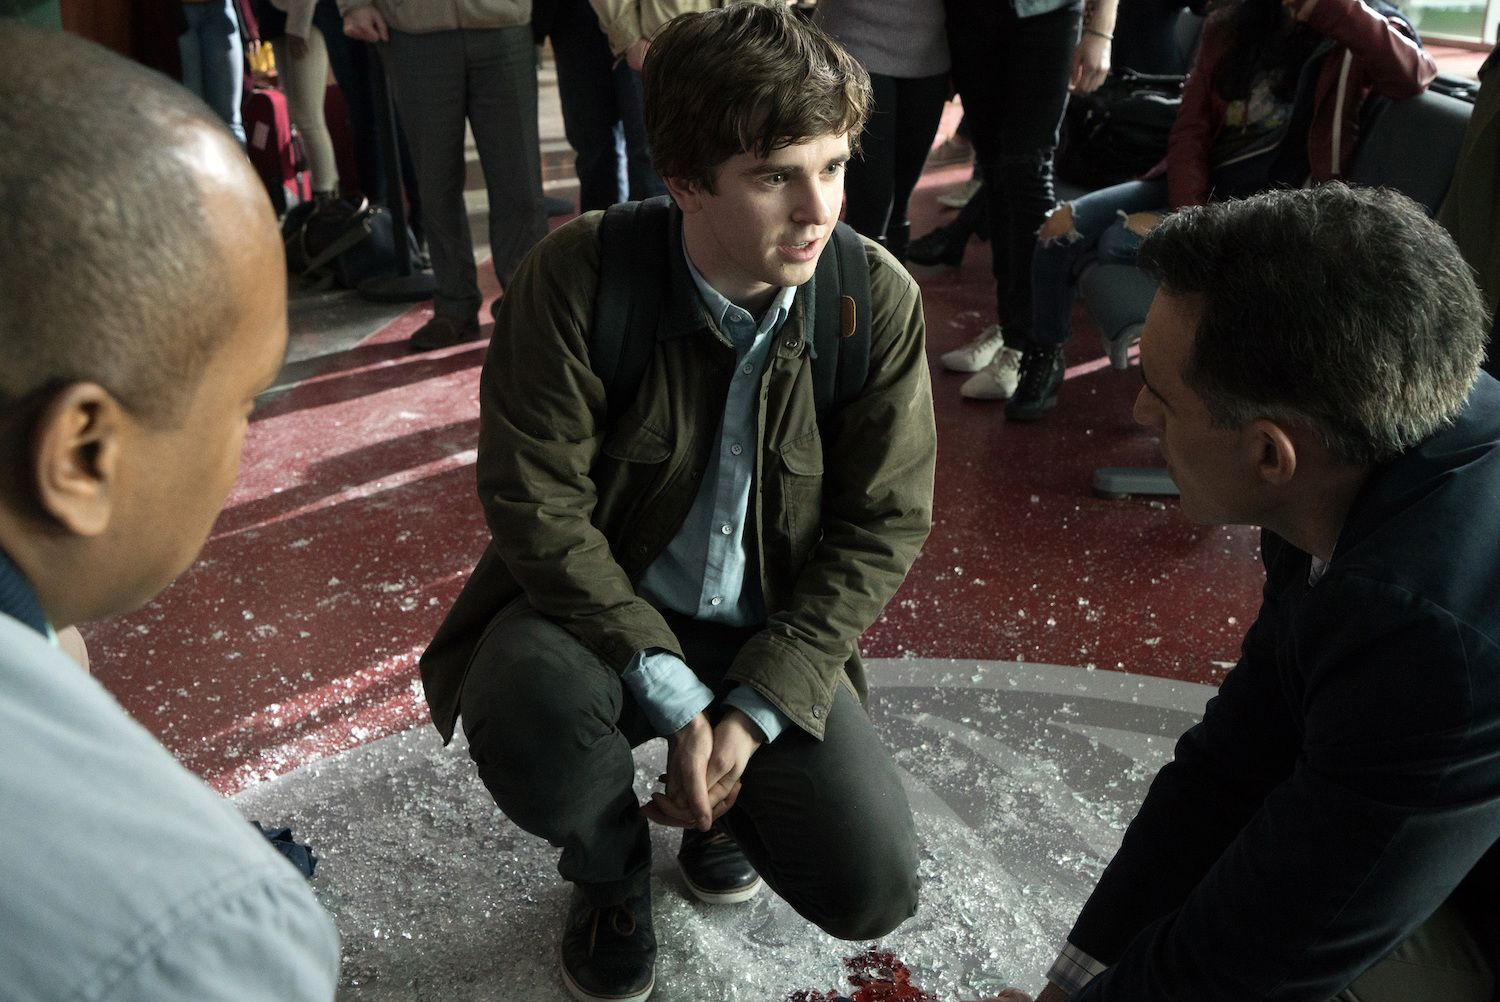 the good doctor - photo #24